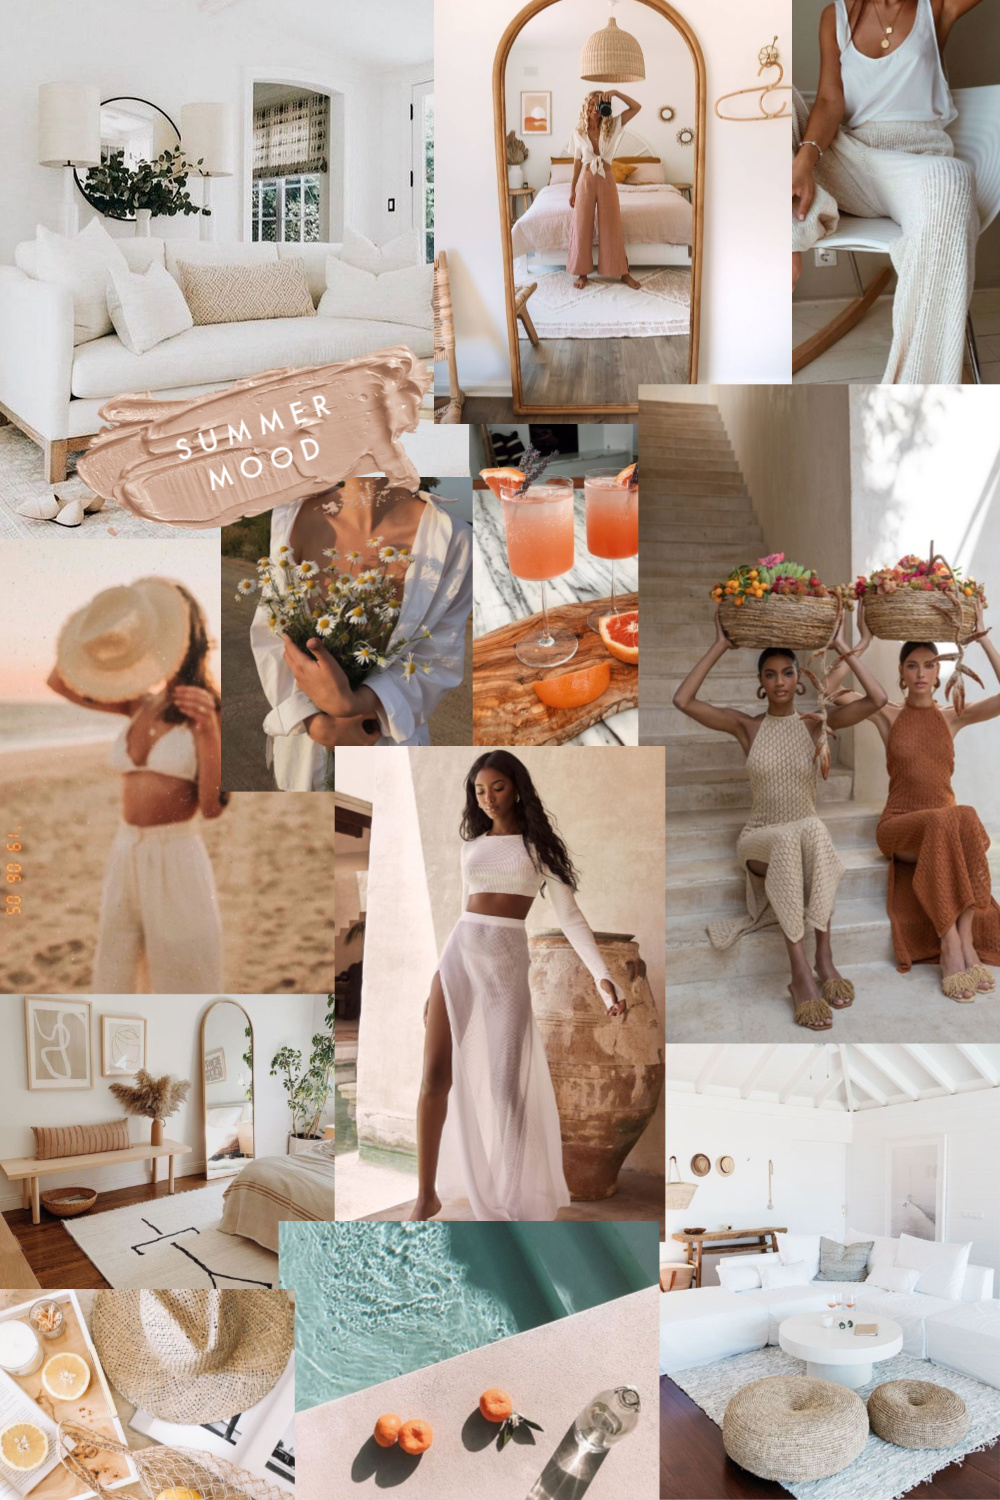 SUMMER-MOOD-BOARD